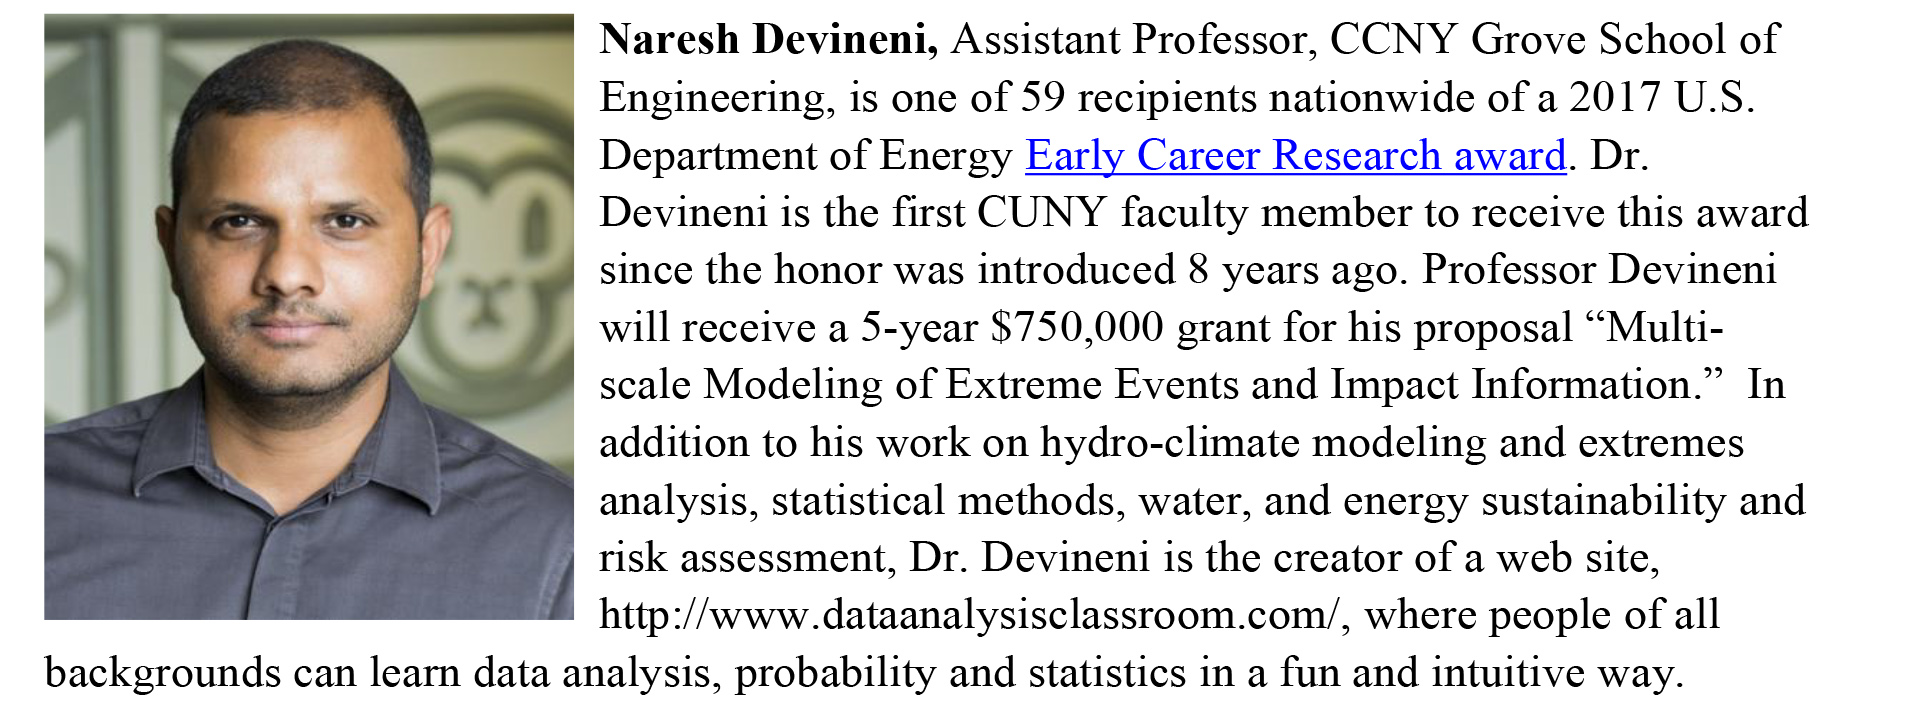 Naresh Devineni, Assistant Professor, CCNY Grove School of Engineering